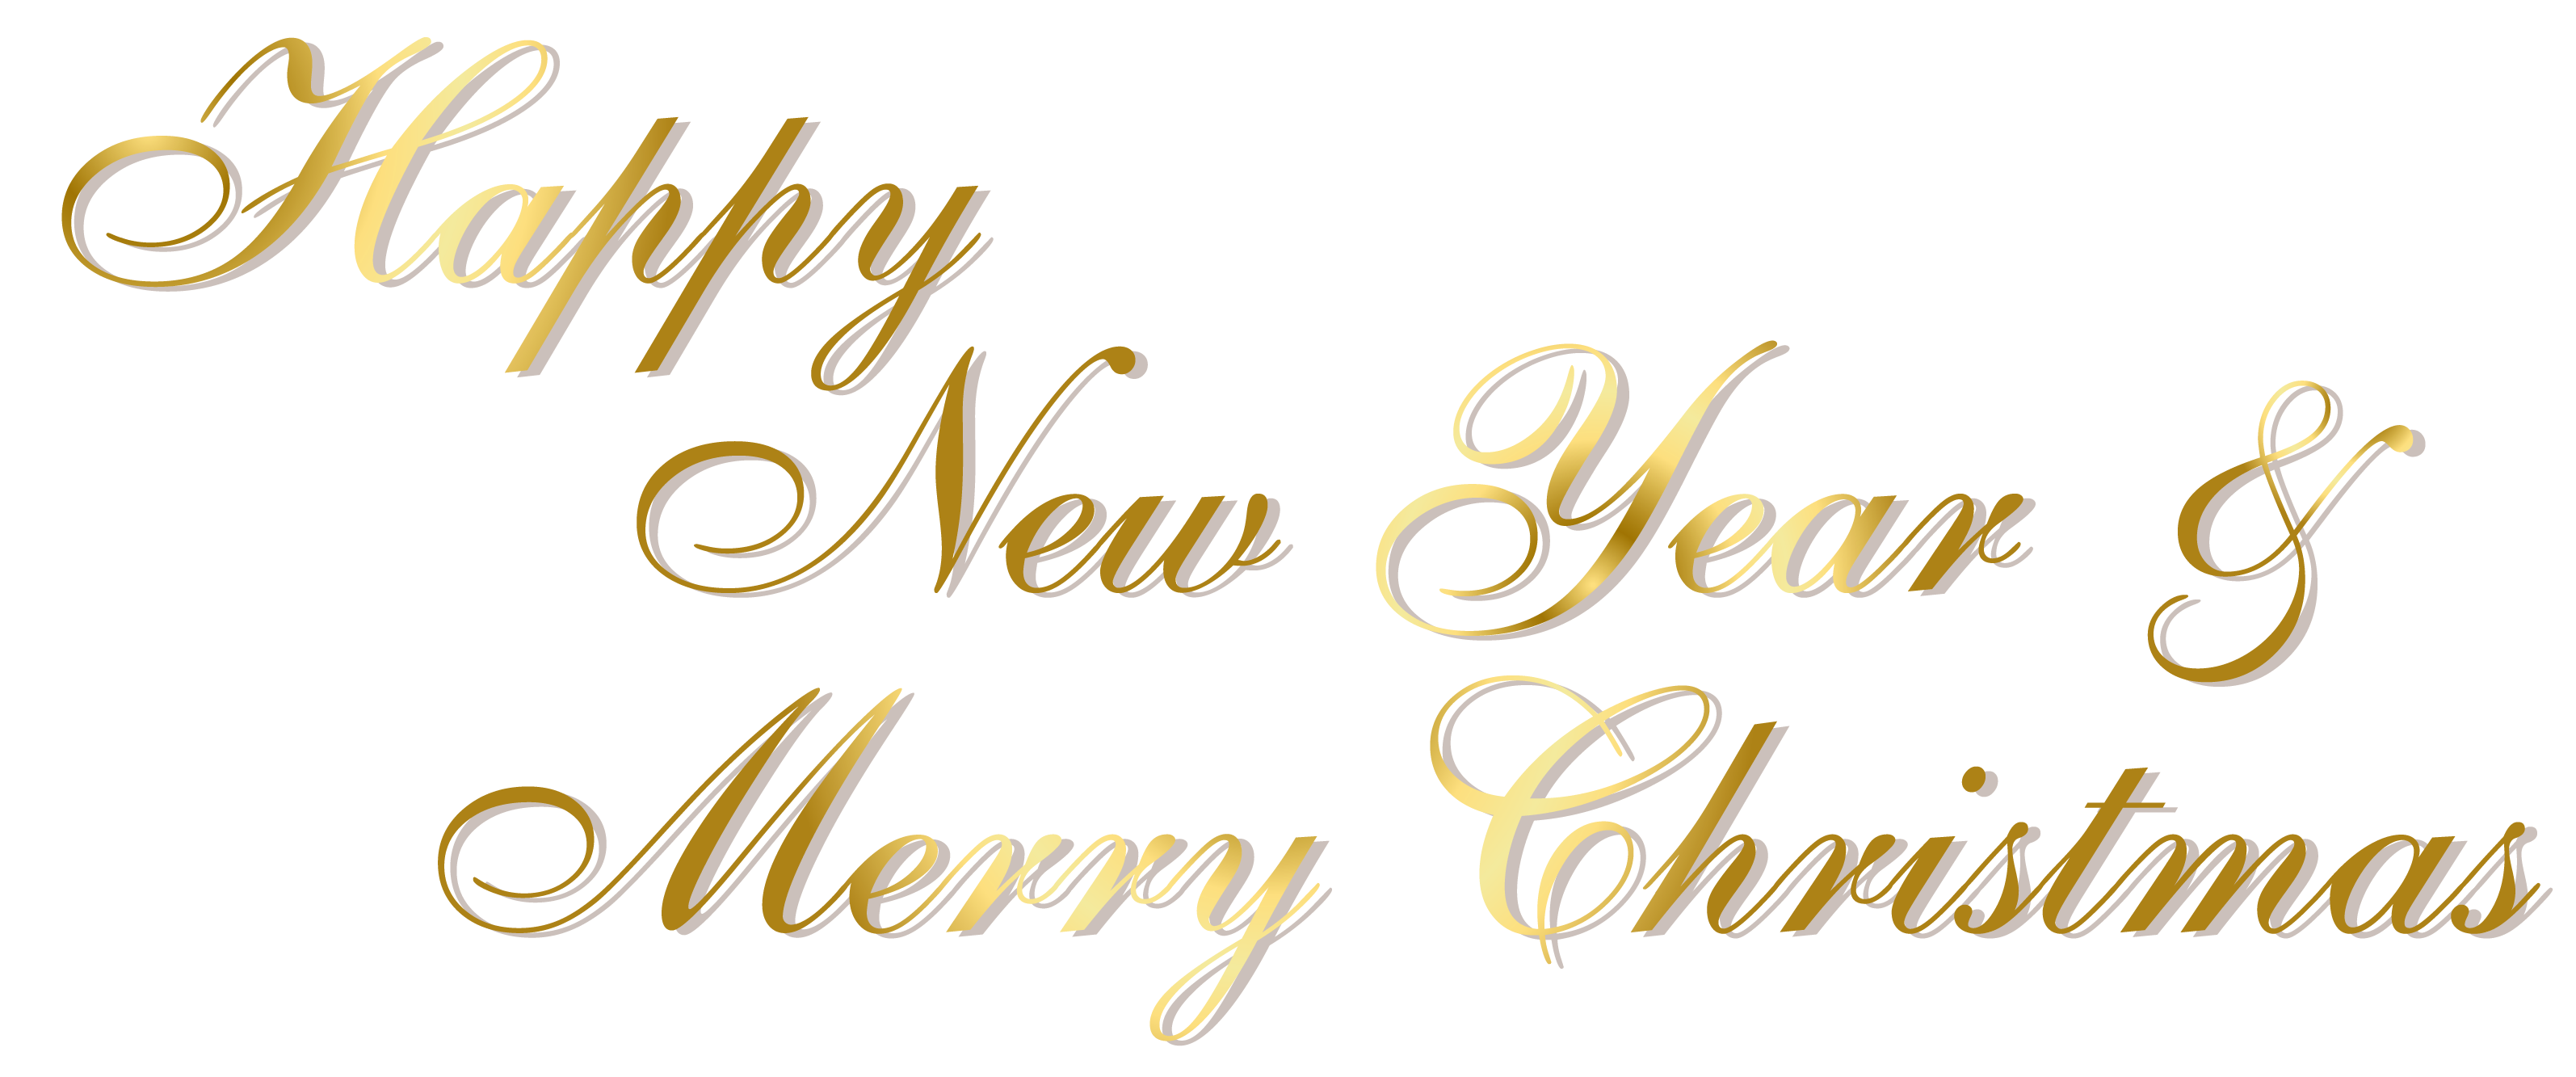 Religious new year clipart png freeuse library Happy new year religious clipart clipart images gallery for ... png freeuse library